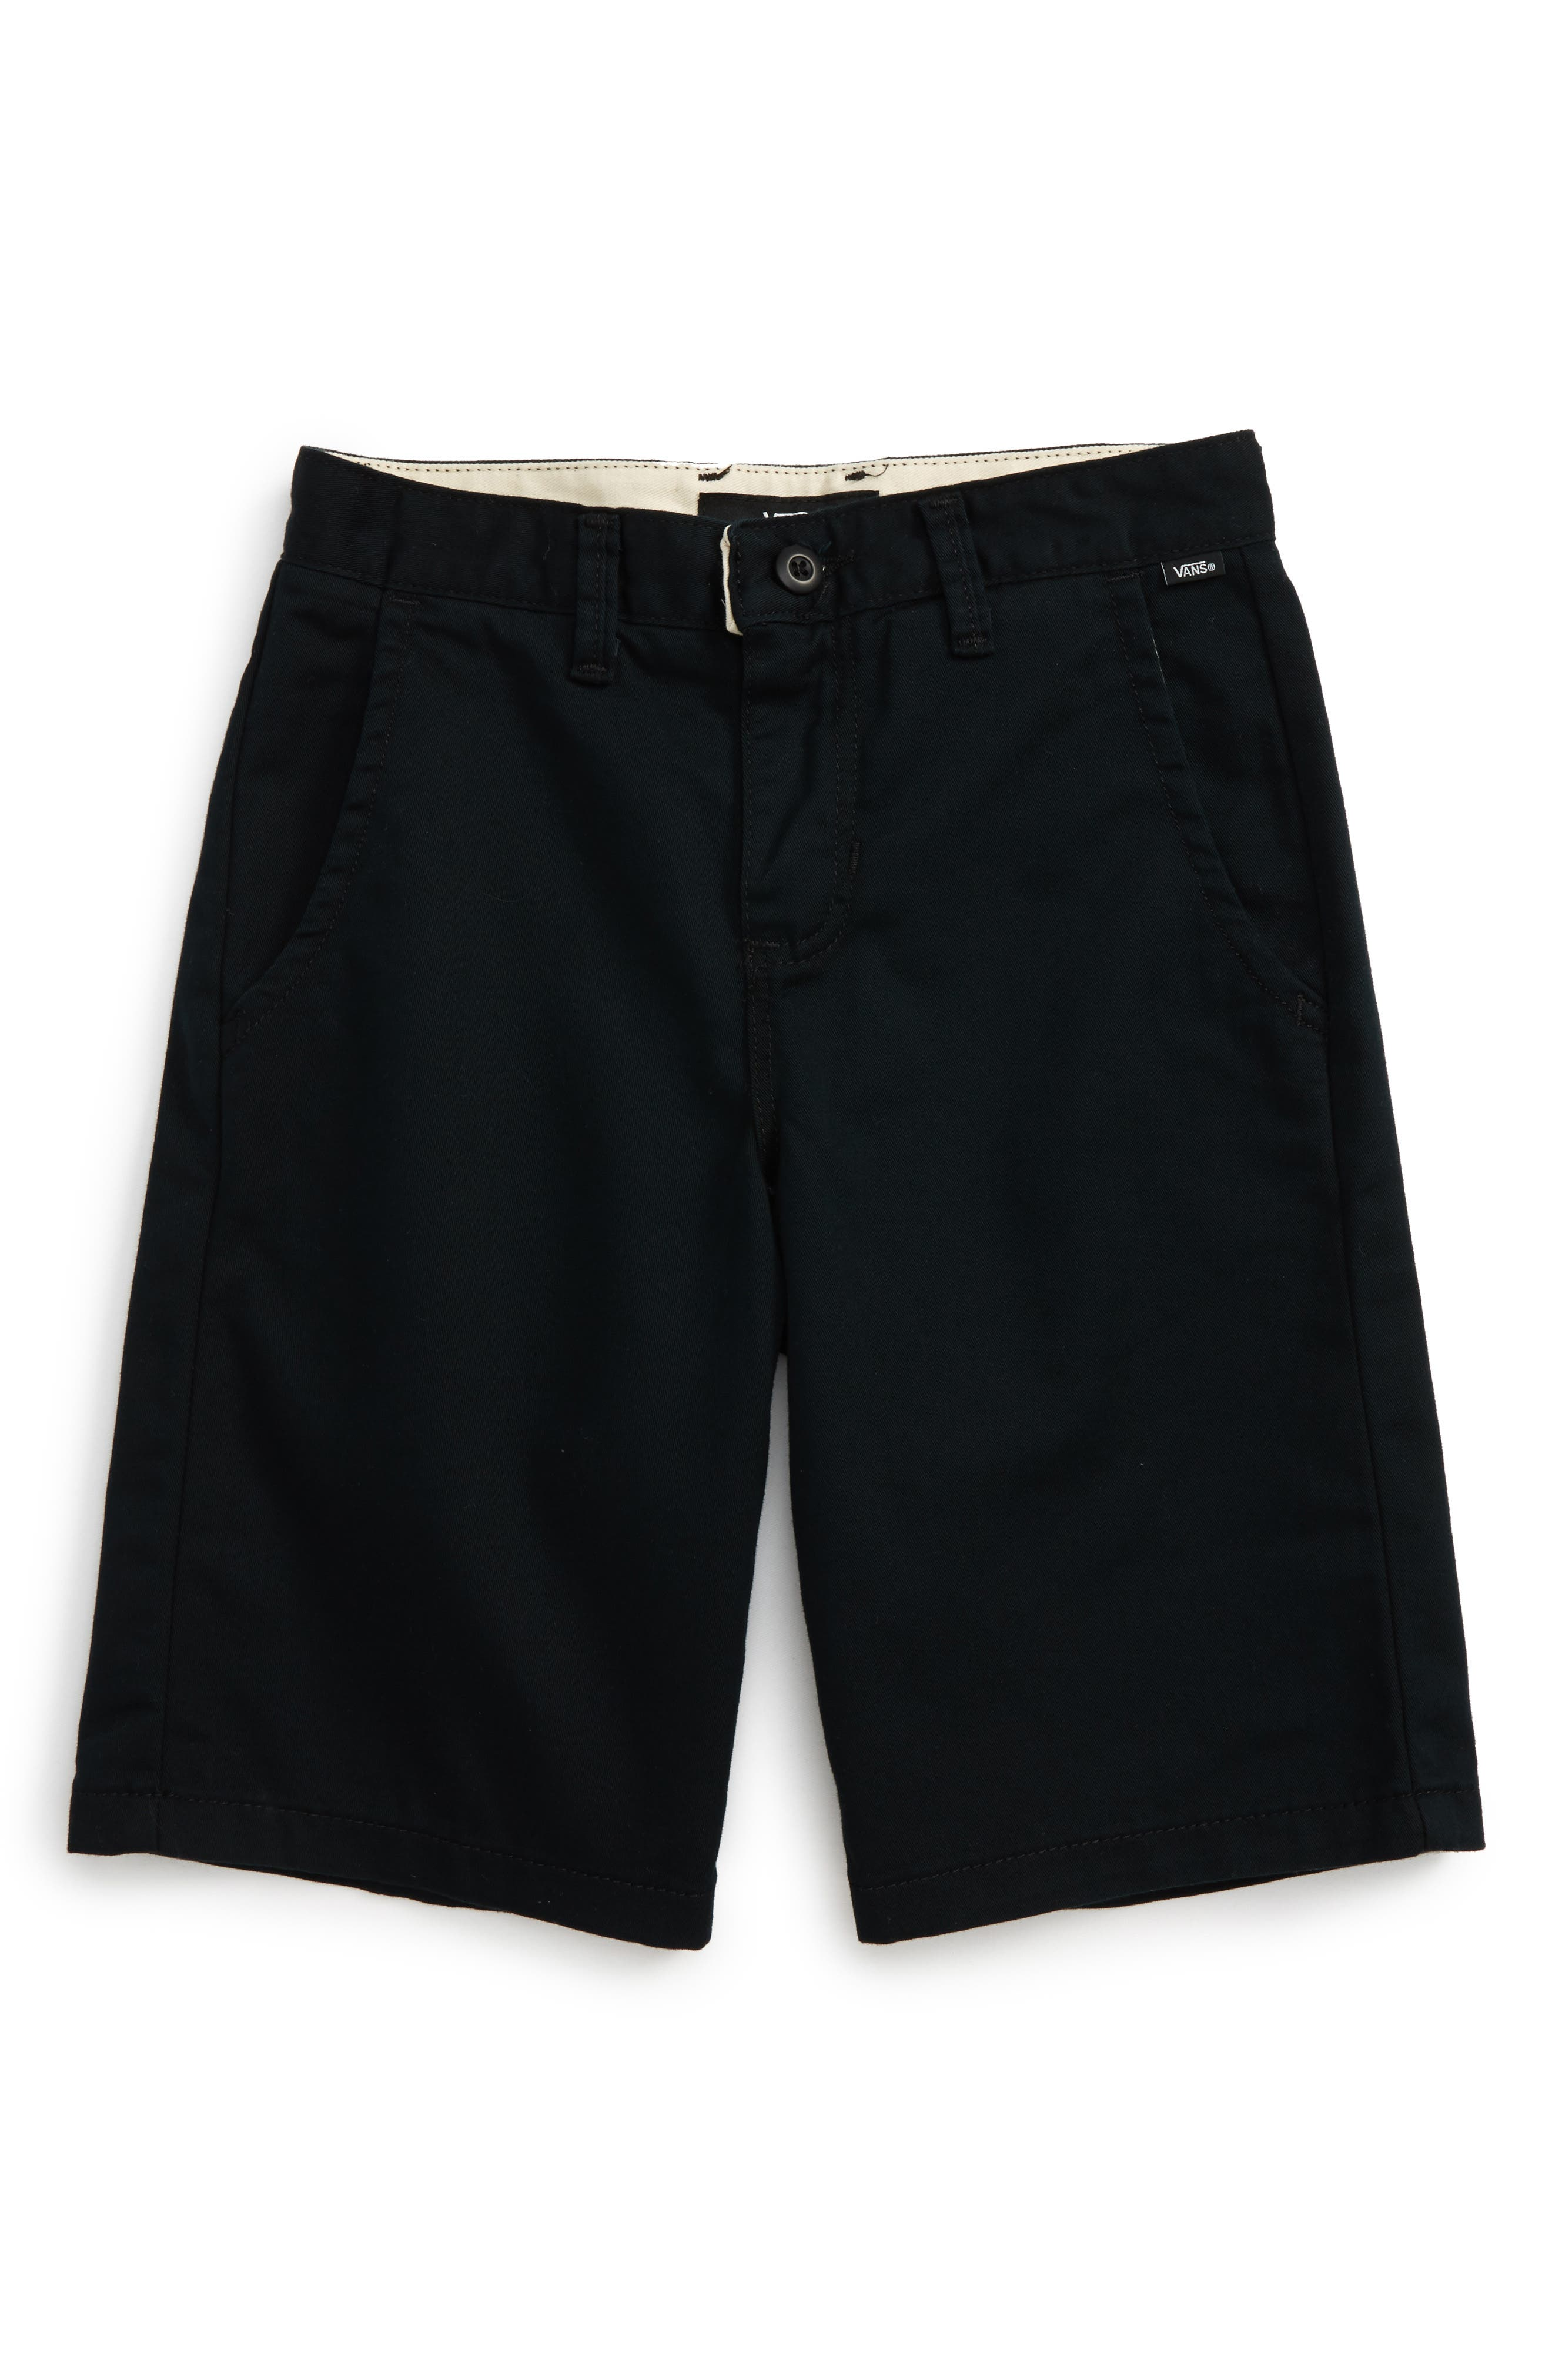 Authentic Walk Shorts,                         Main,                         color, 001